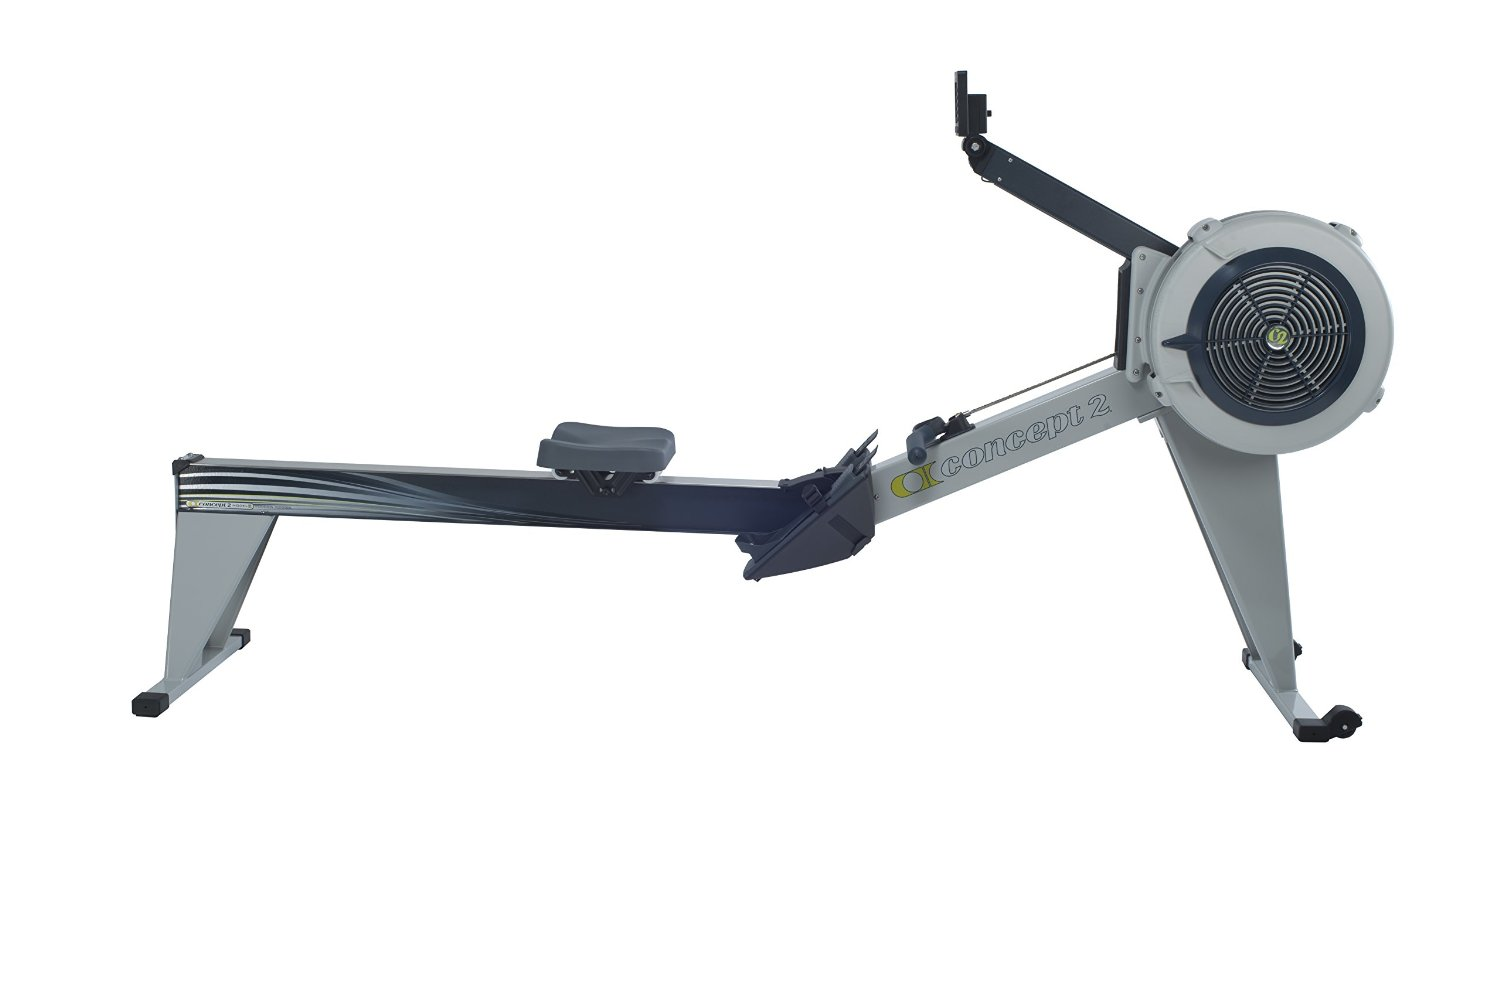 what rowing machine is used on house of cards